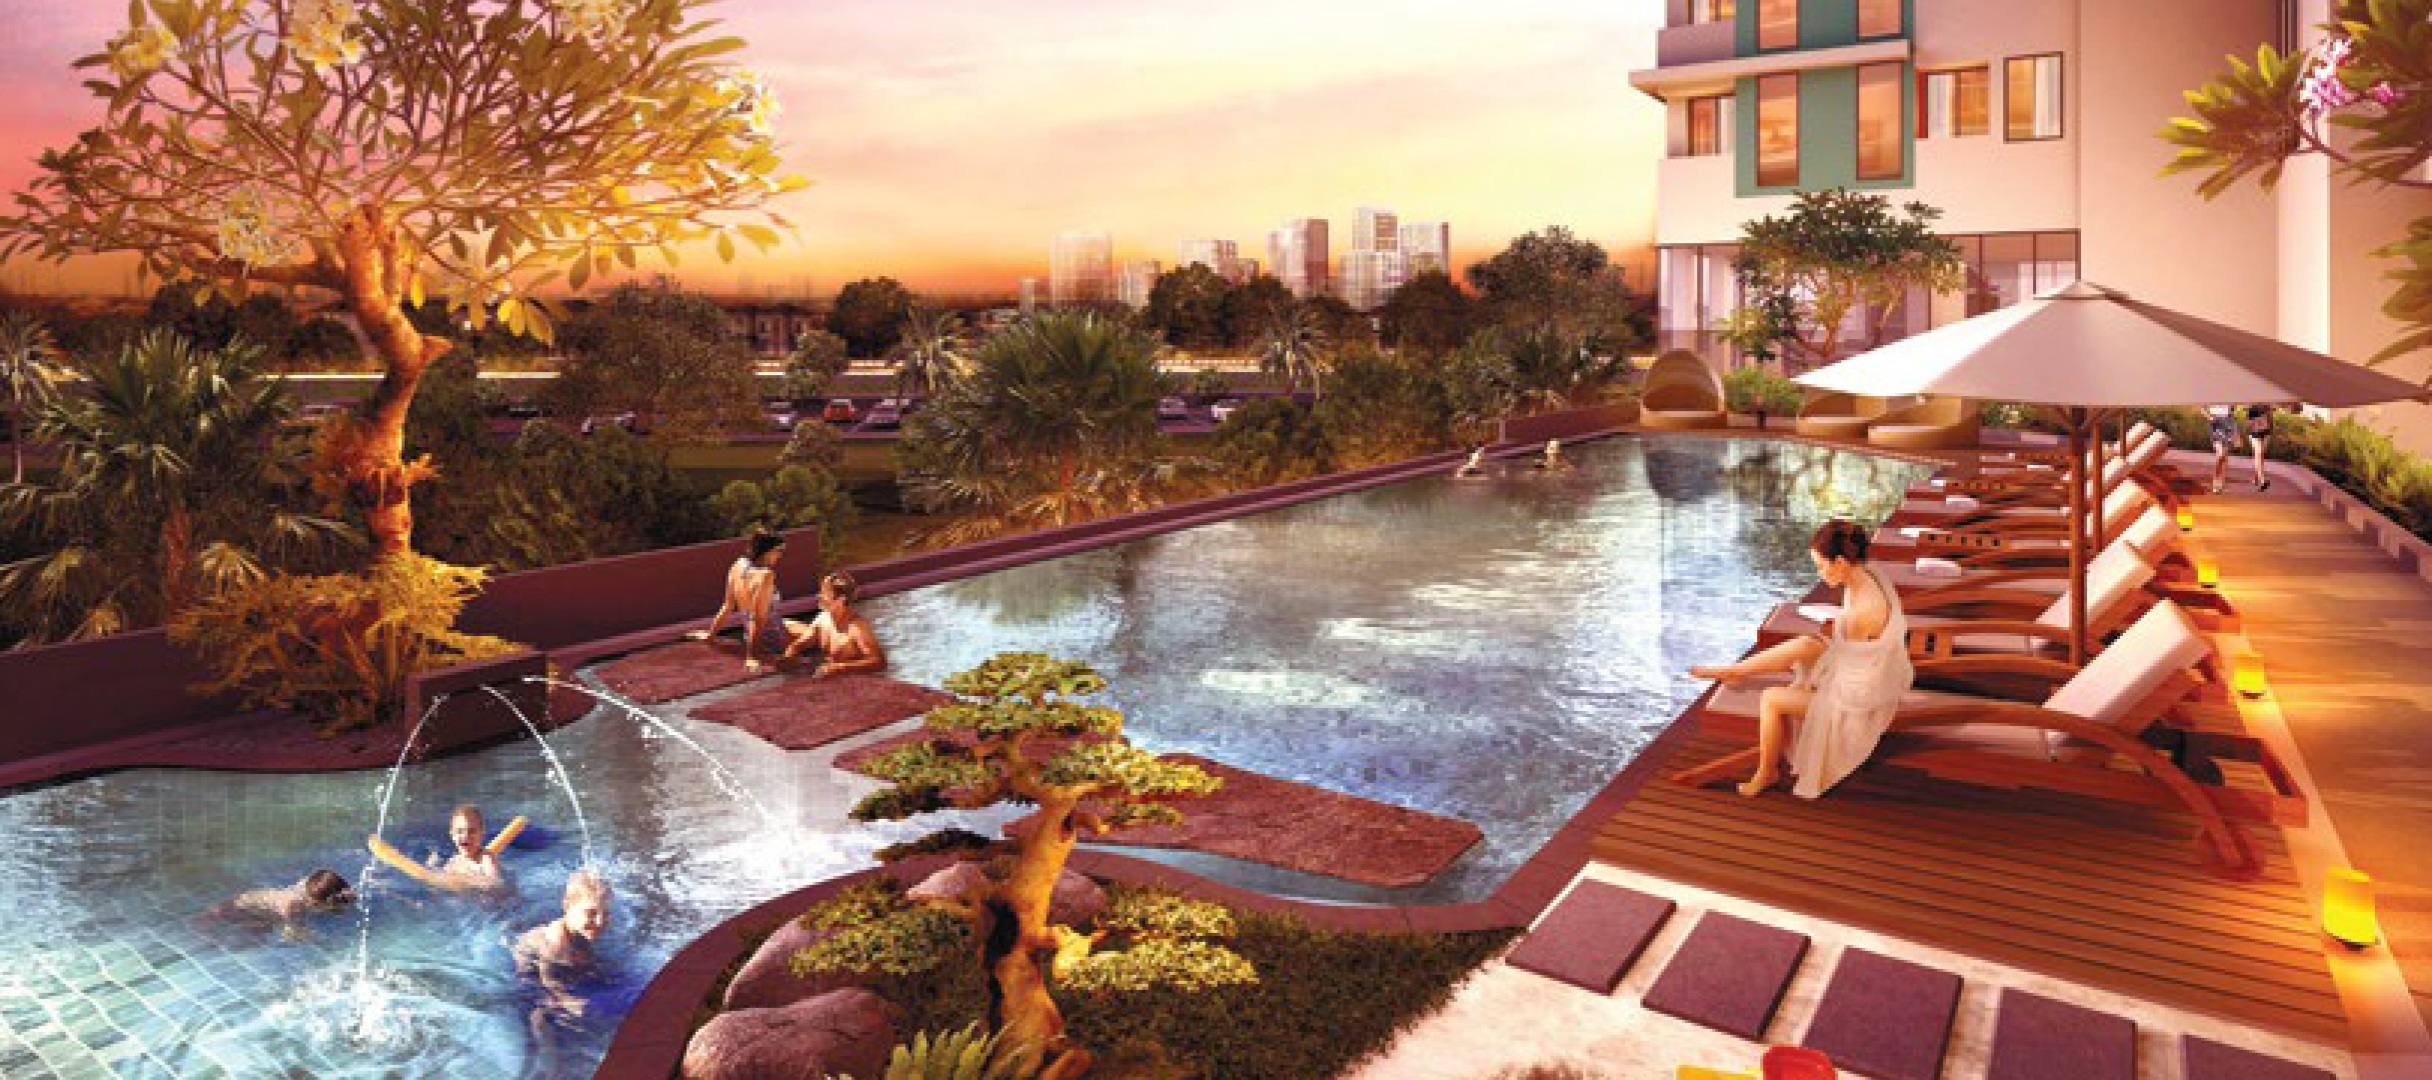 Serpong Garden Apartment Picture